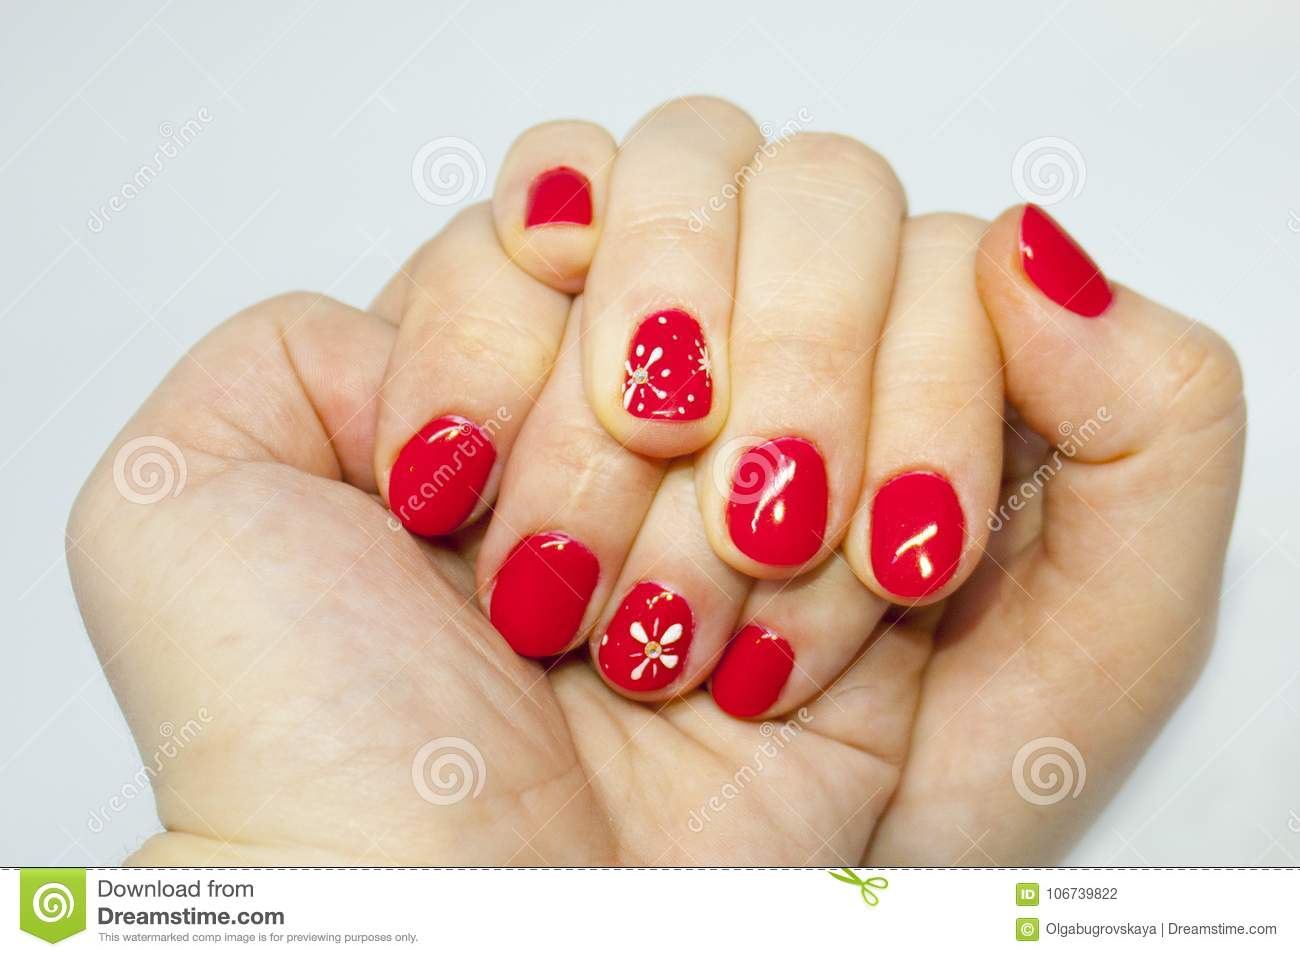 Manicure Nails Art Red And White Nail Polish Stock Photo Image Of